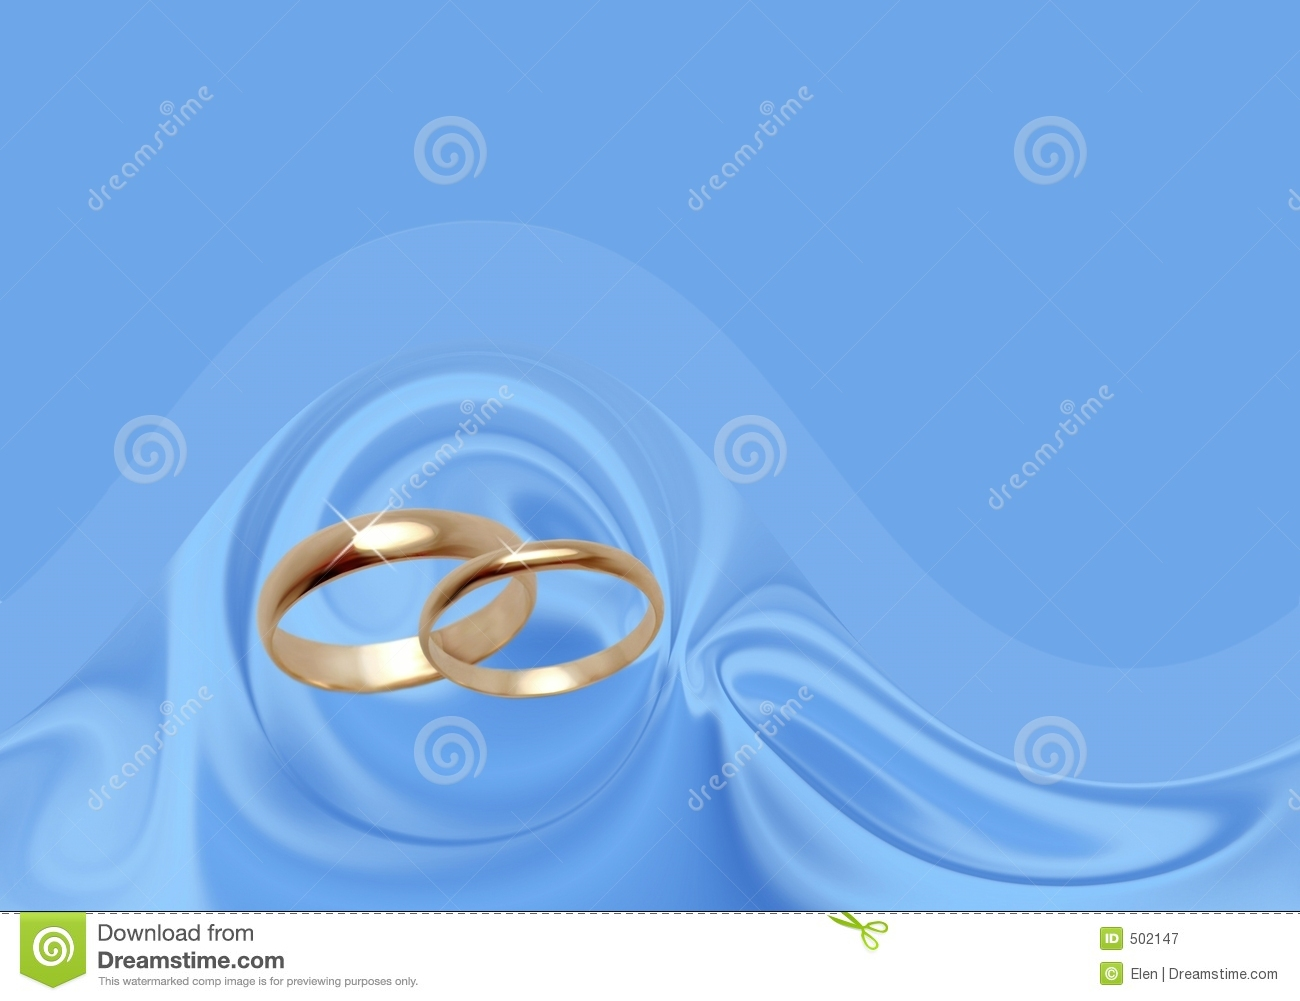 Wedding Rings On Blue Material. Royalty Free Stock ...